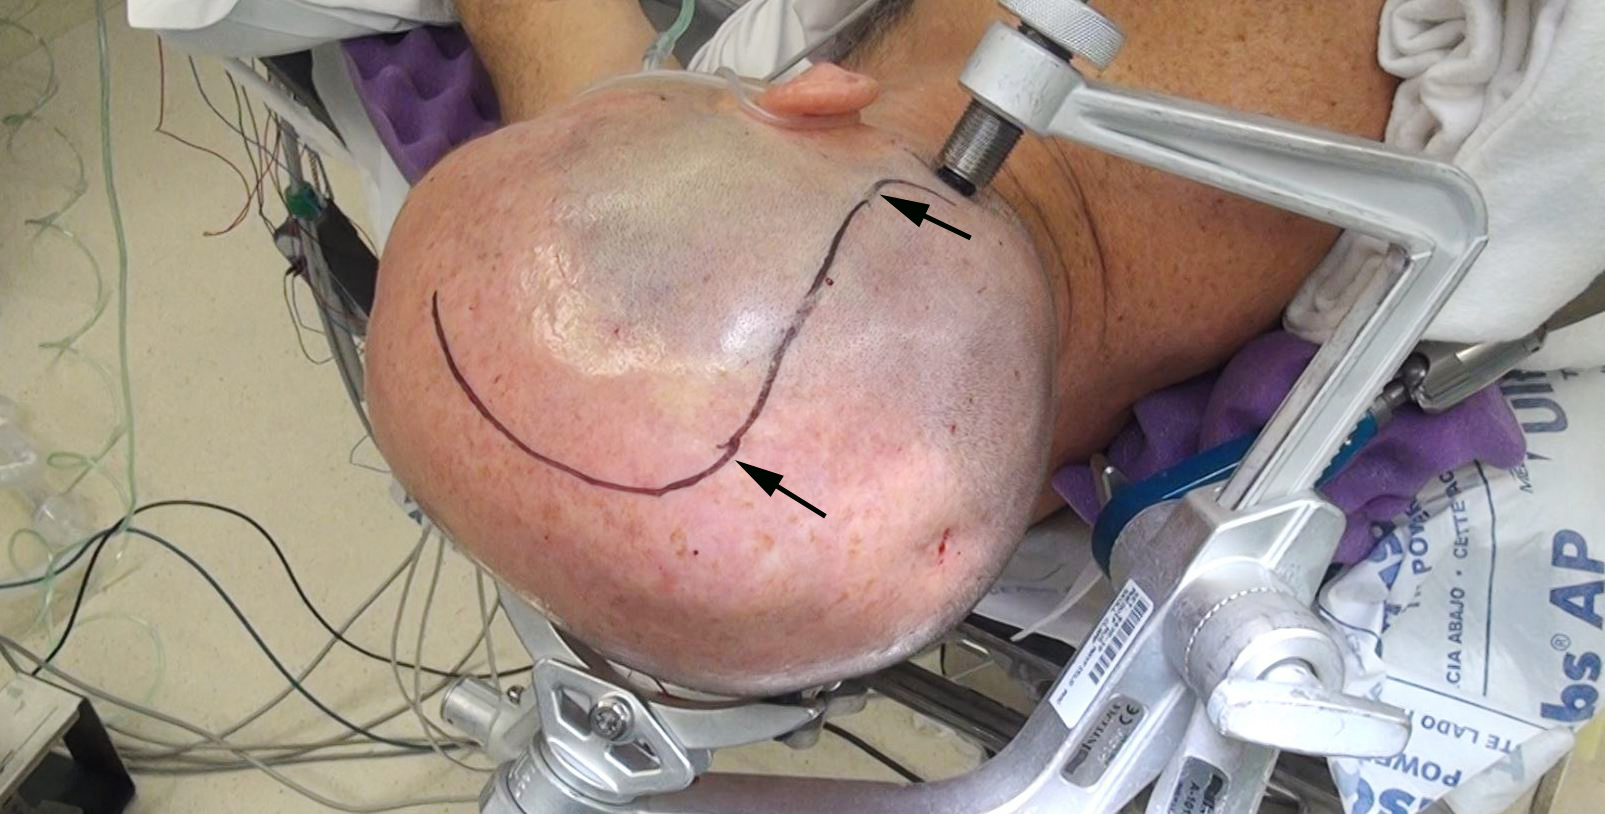 Figure 7: Repeat operations after radiation treatment are especially taxing on the healing process. In this case, the patient underwent his first surgery using a linear incision (marked with arrows). Following radiotherapy, the tumor later recurred anterior to the initial resection cavity. The linear incision allowed more flexibility for planning the incision to expose the region anterior to the resection cavity during the second operation.